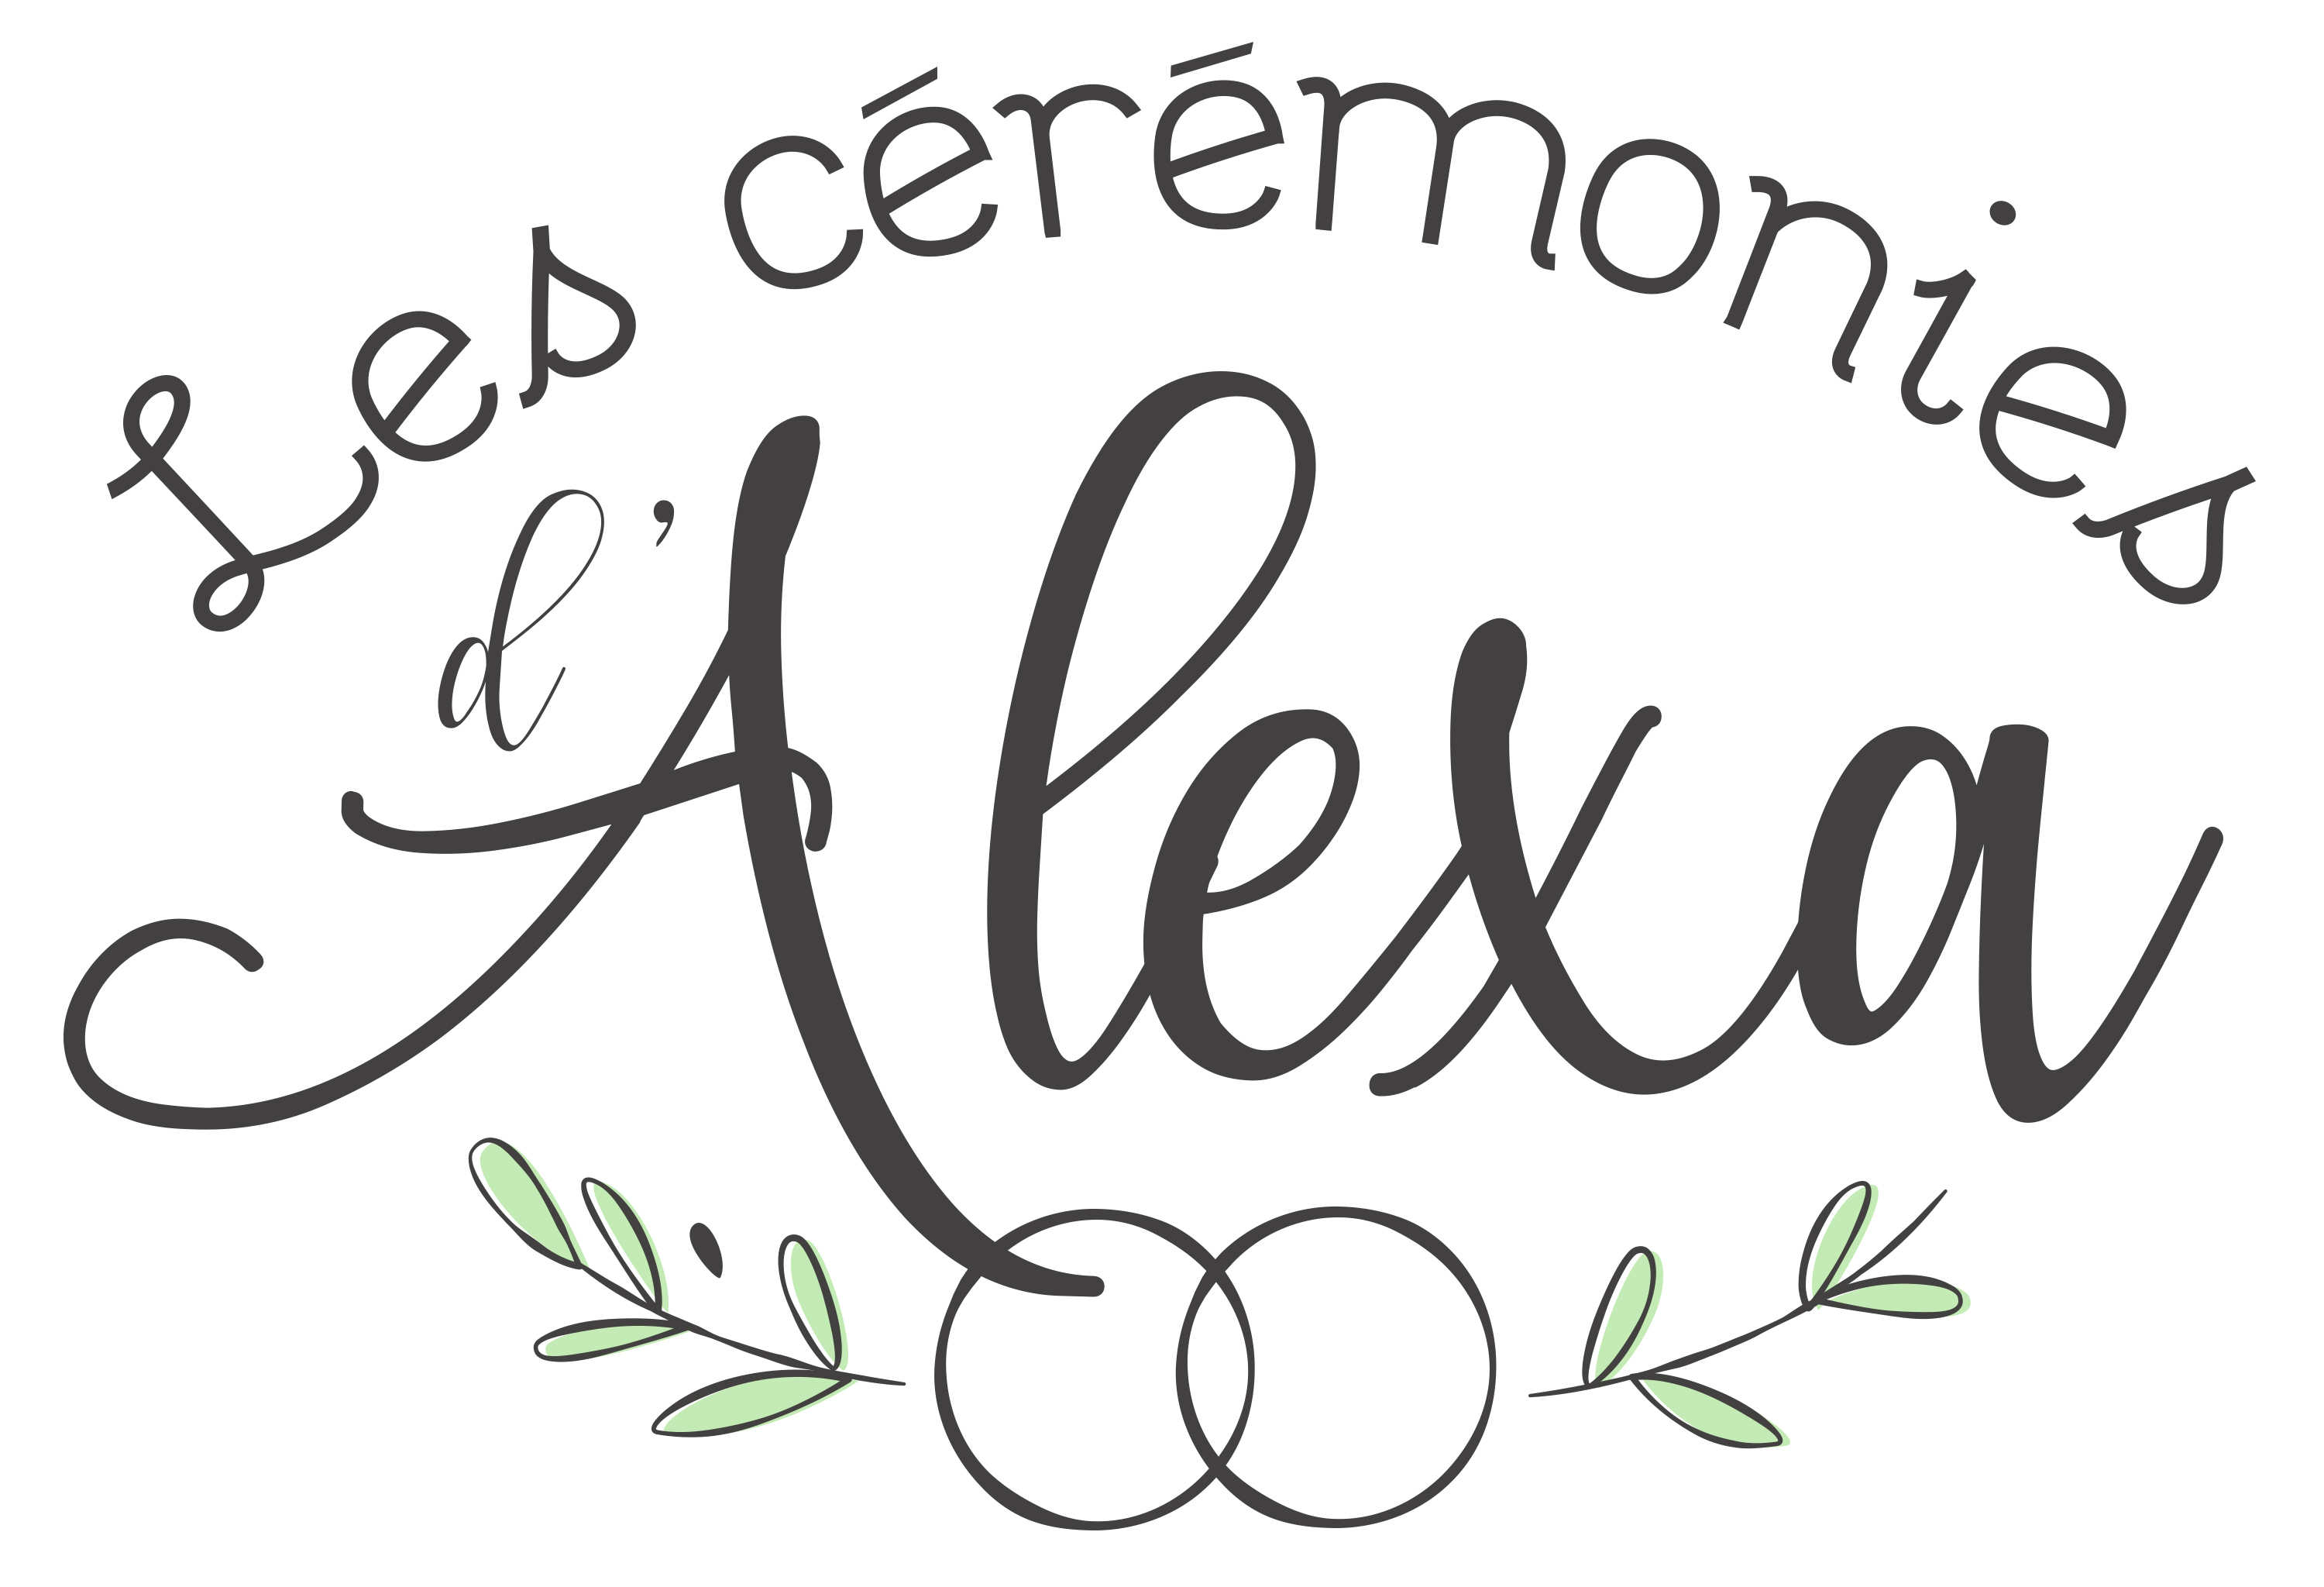 logo-les-ceremonies-dalexa-coaching-en-ligne-ceremonie-laique-france-alexa-organiser-ma-ceremonie-laique